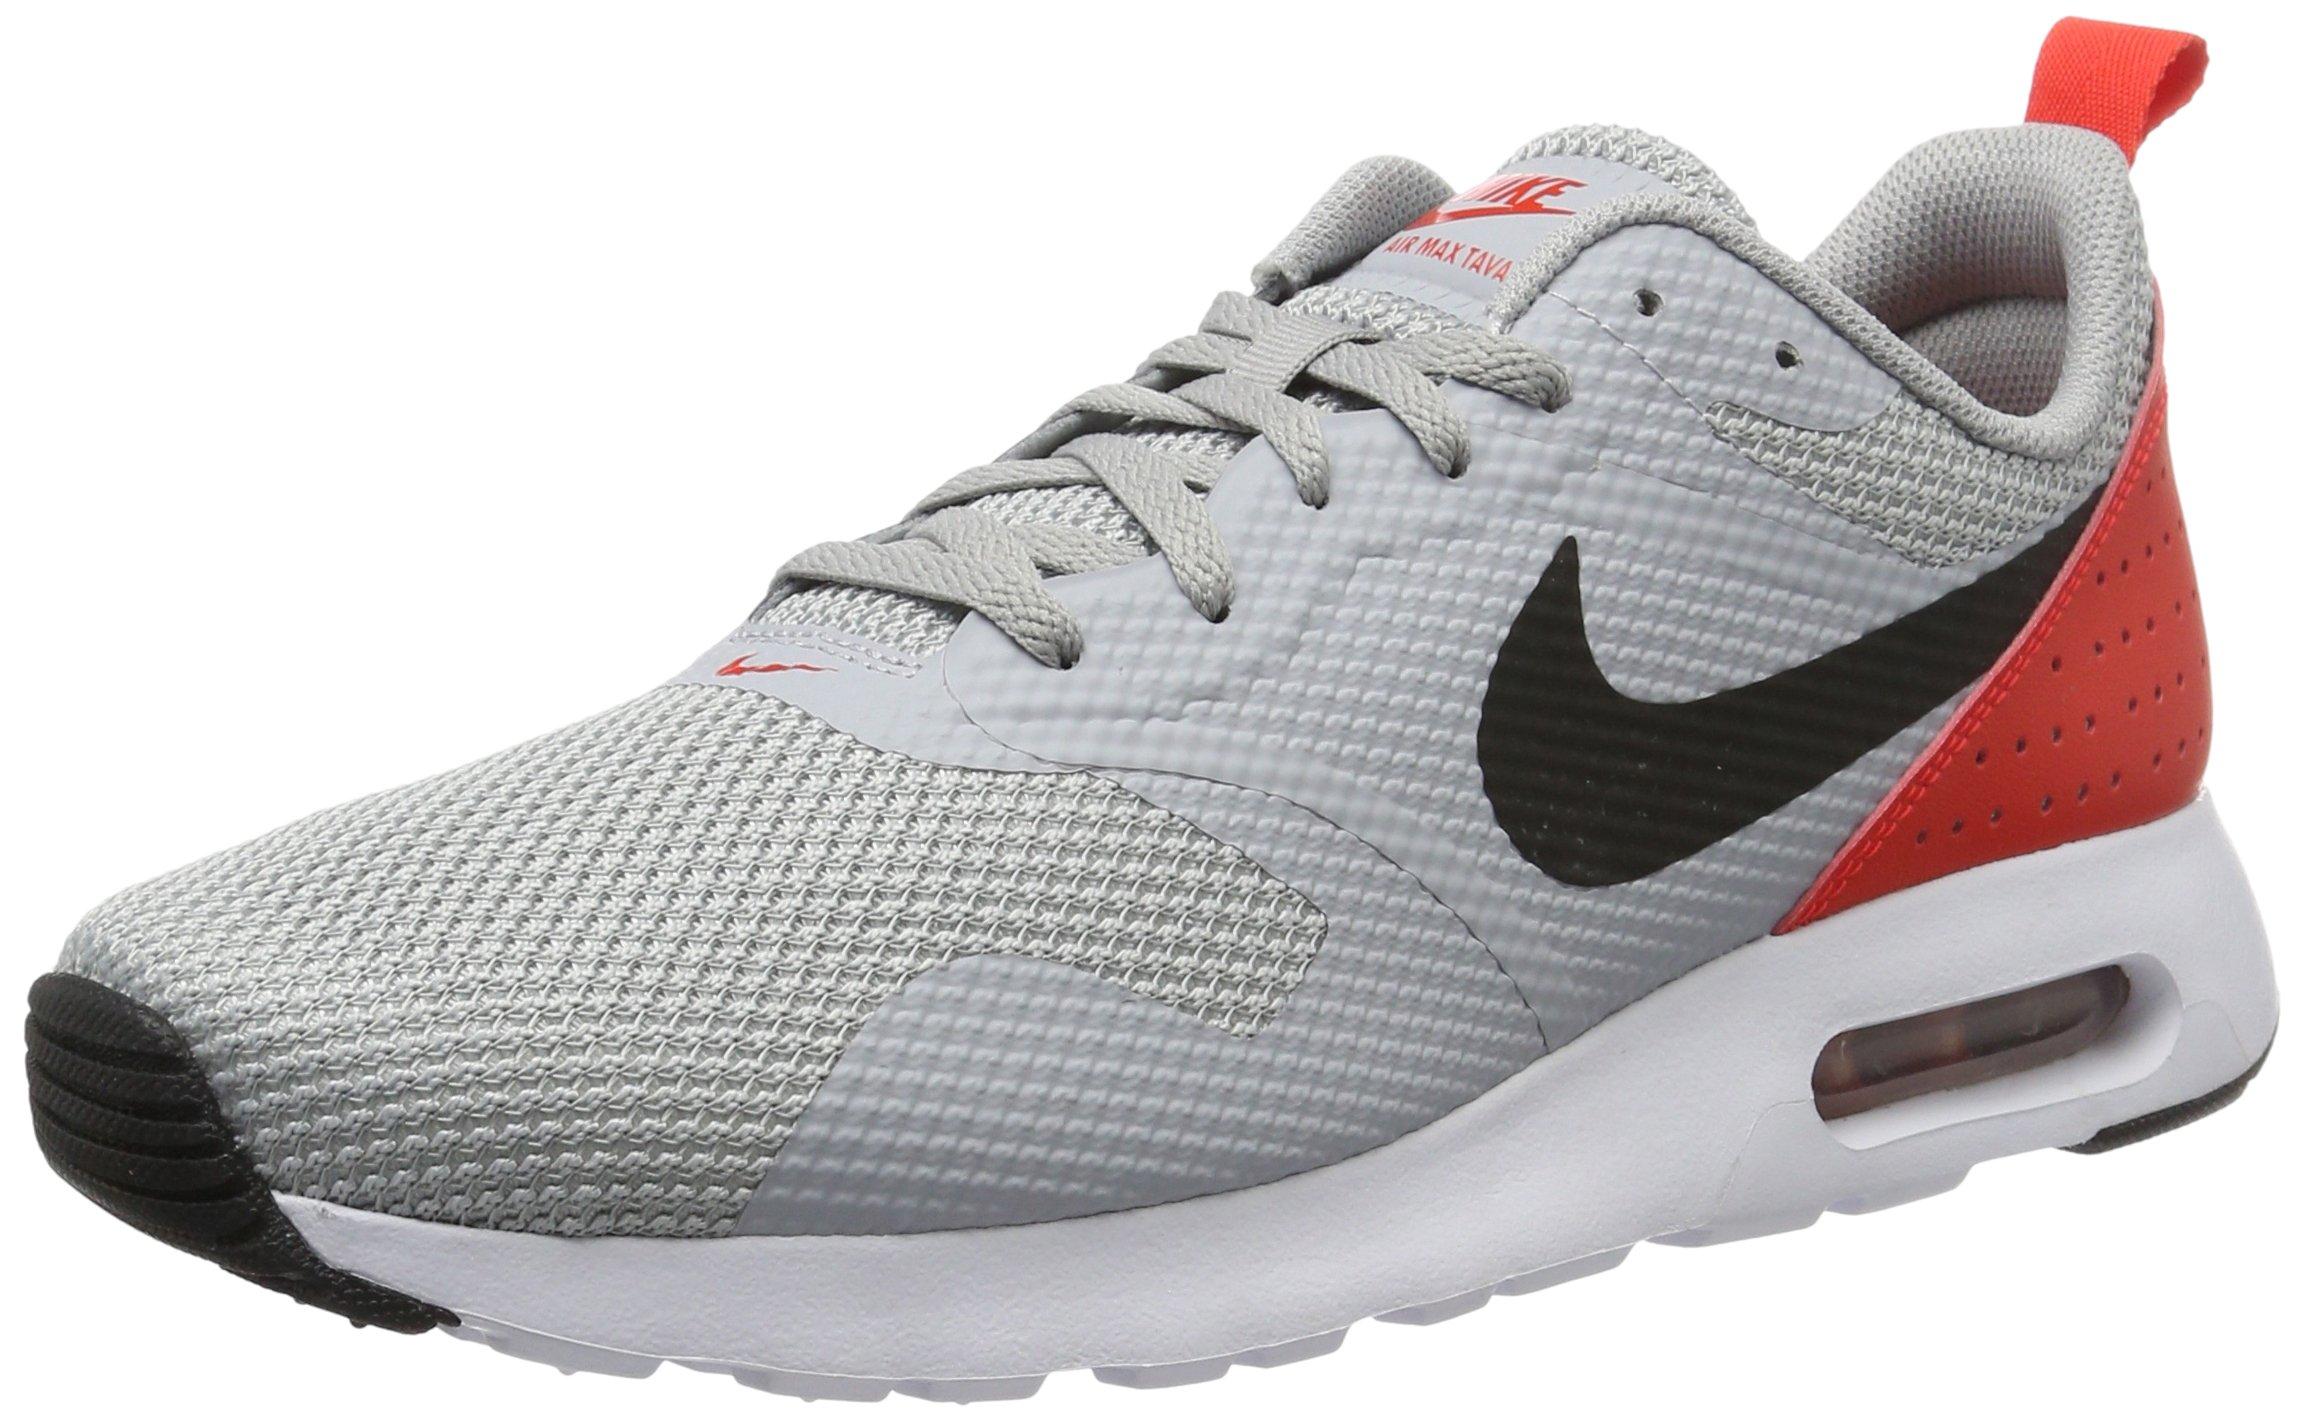 new style 847b6 05842 Galleon - Nike Air Max Tavas Mens Style   705149 Mens 705149-026 Size 7.5